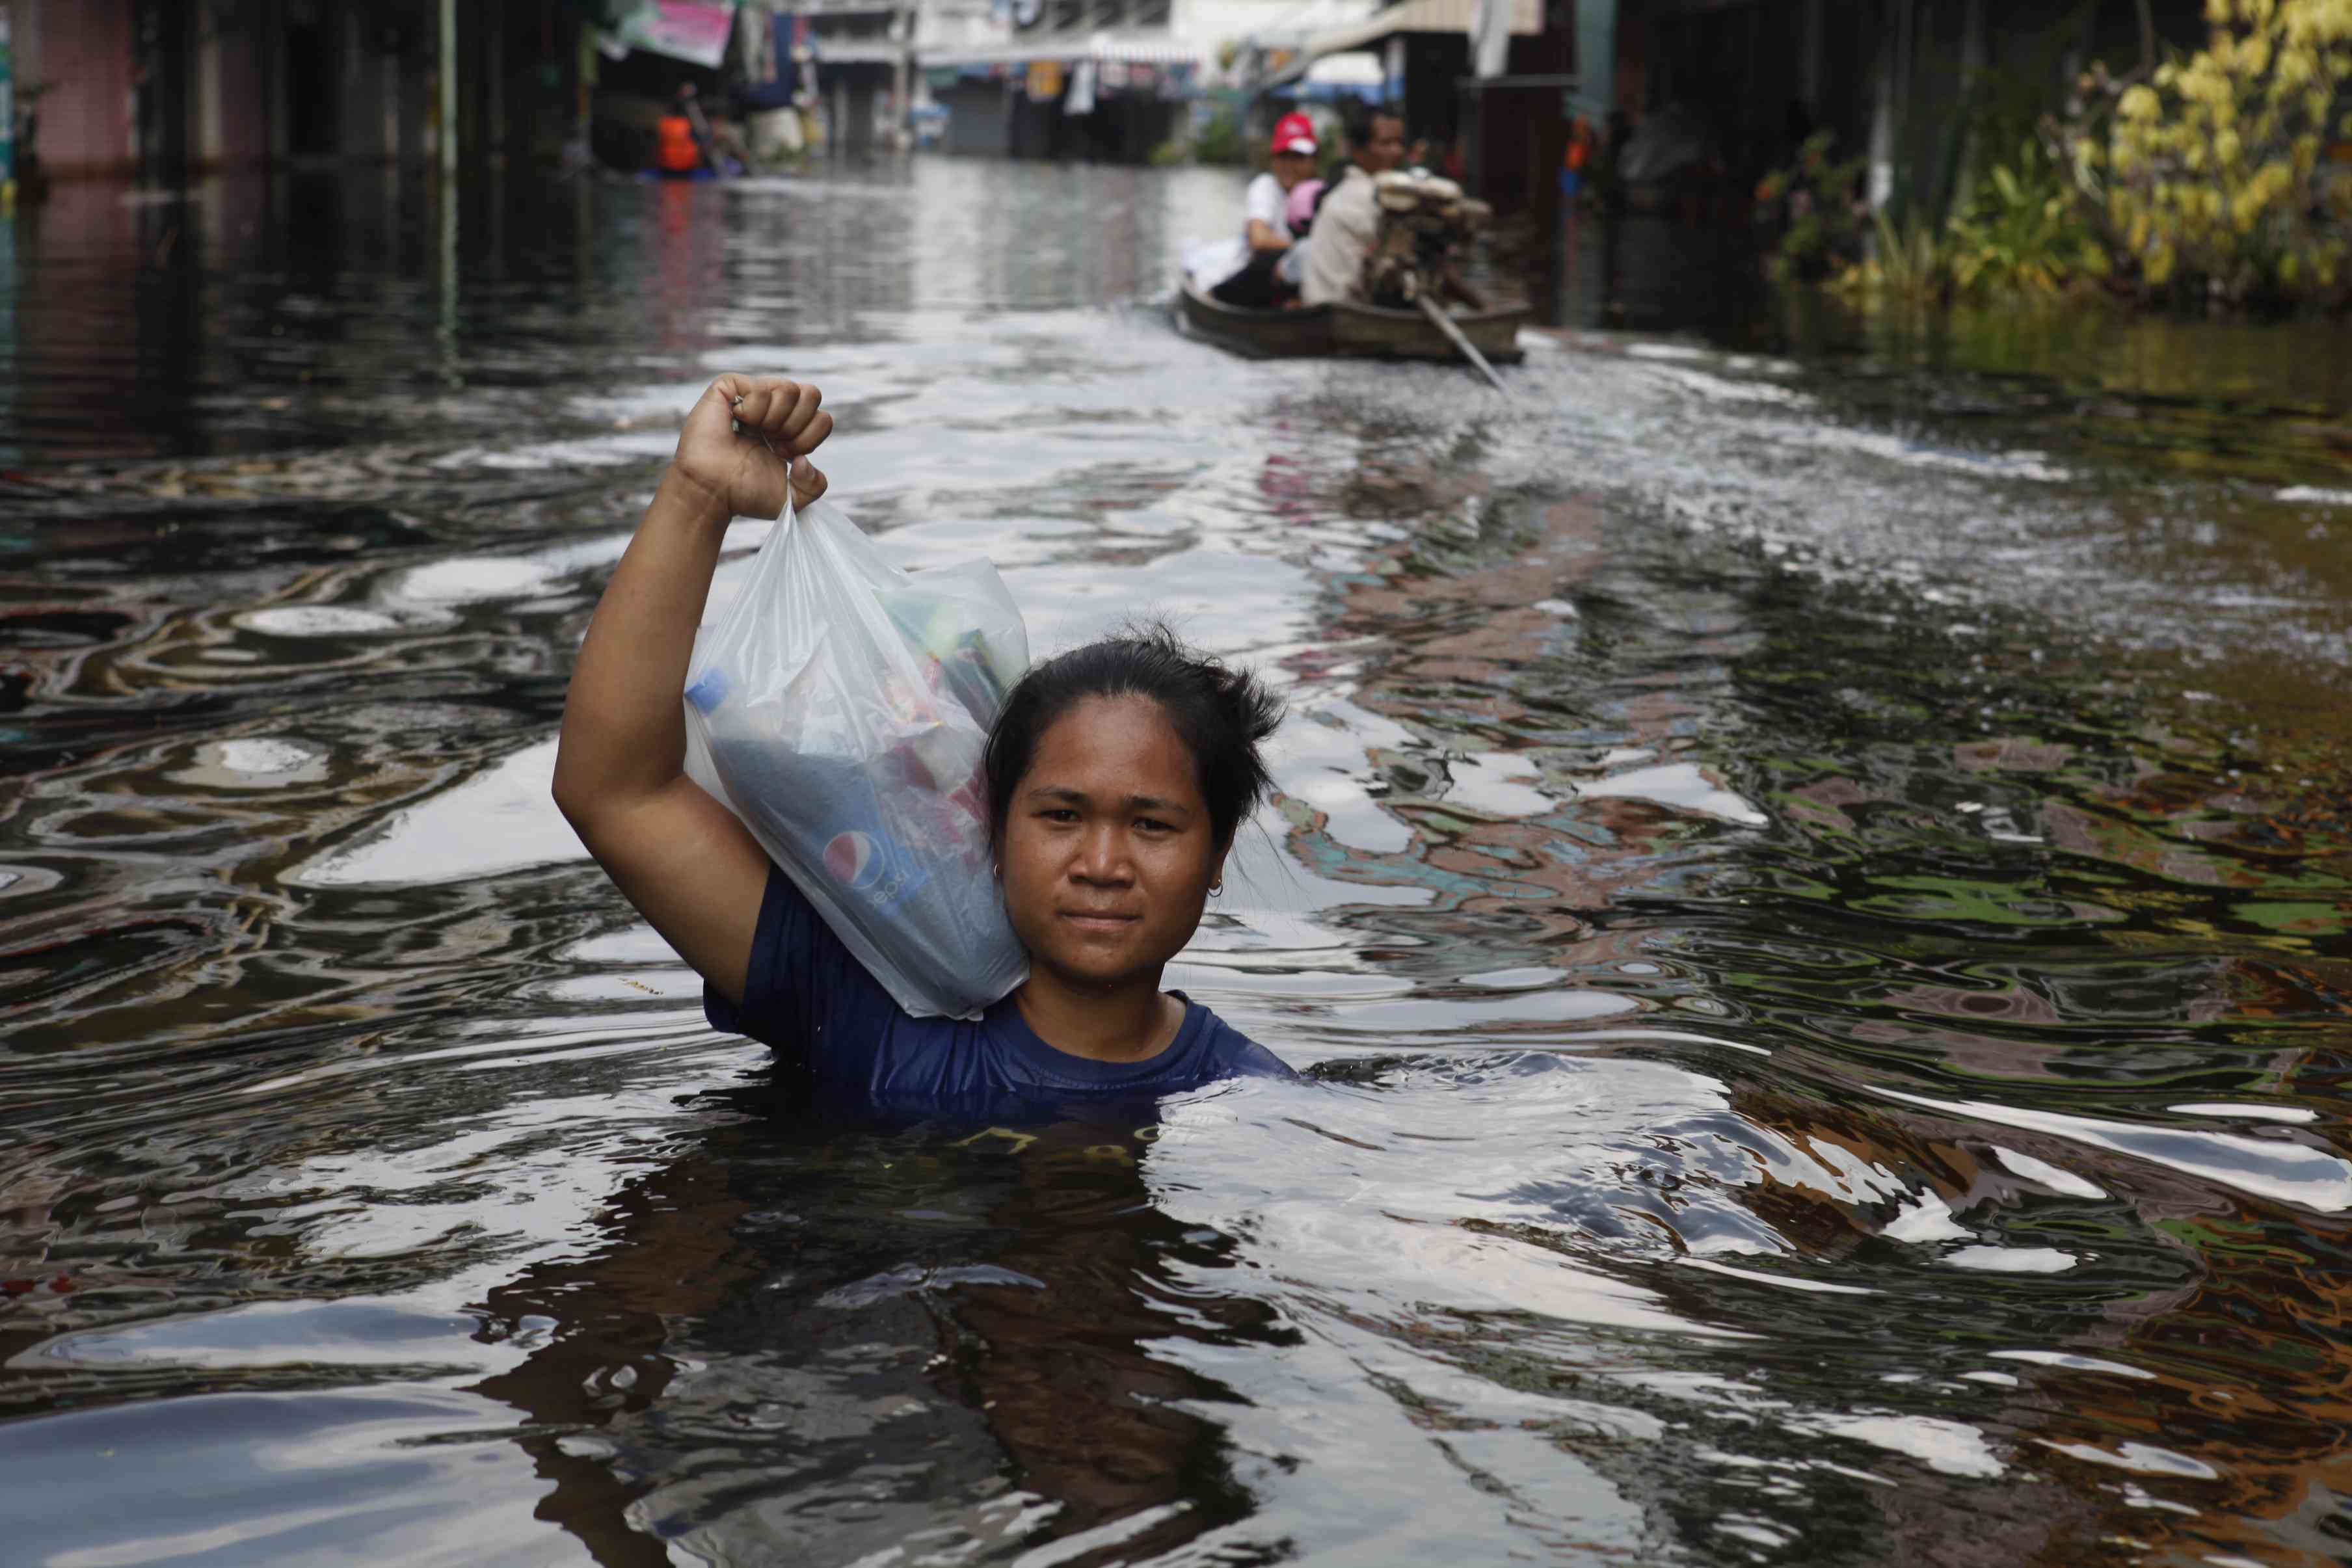 Thailand - Floods - Living with floodwaters